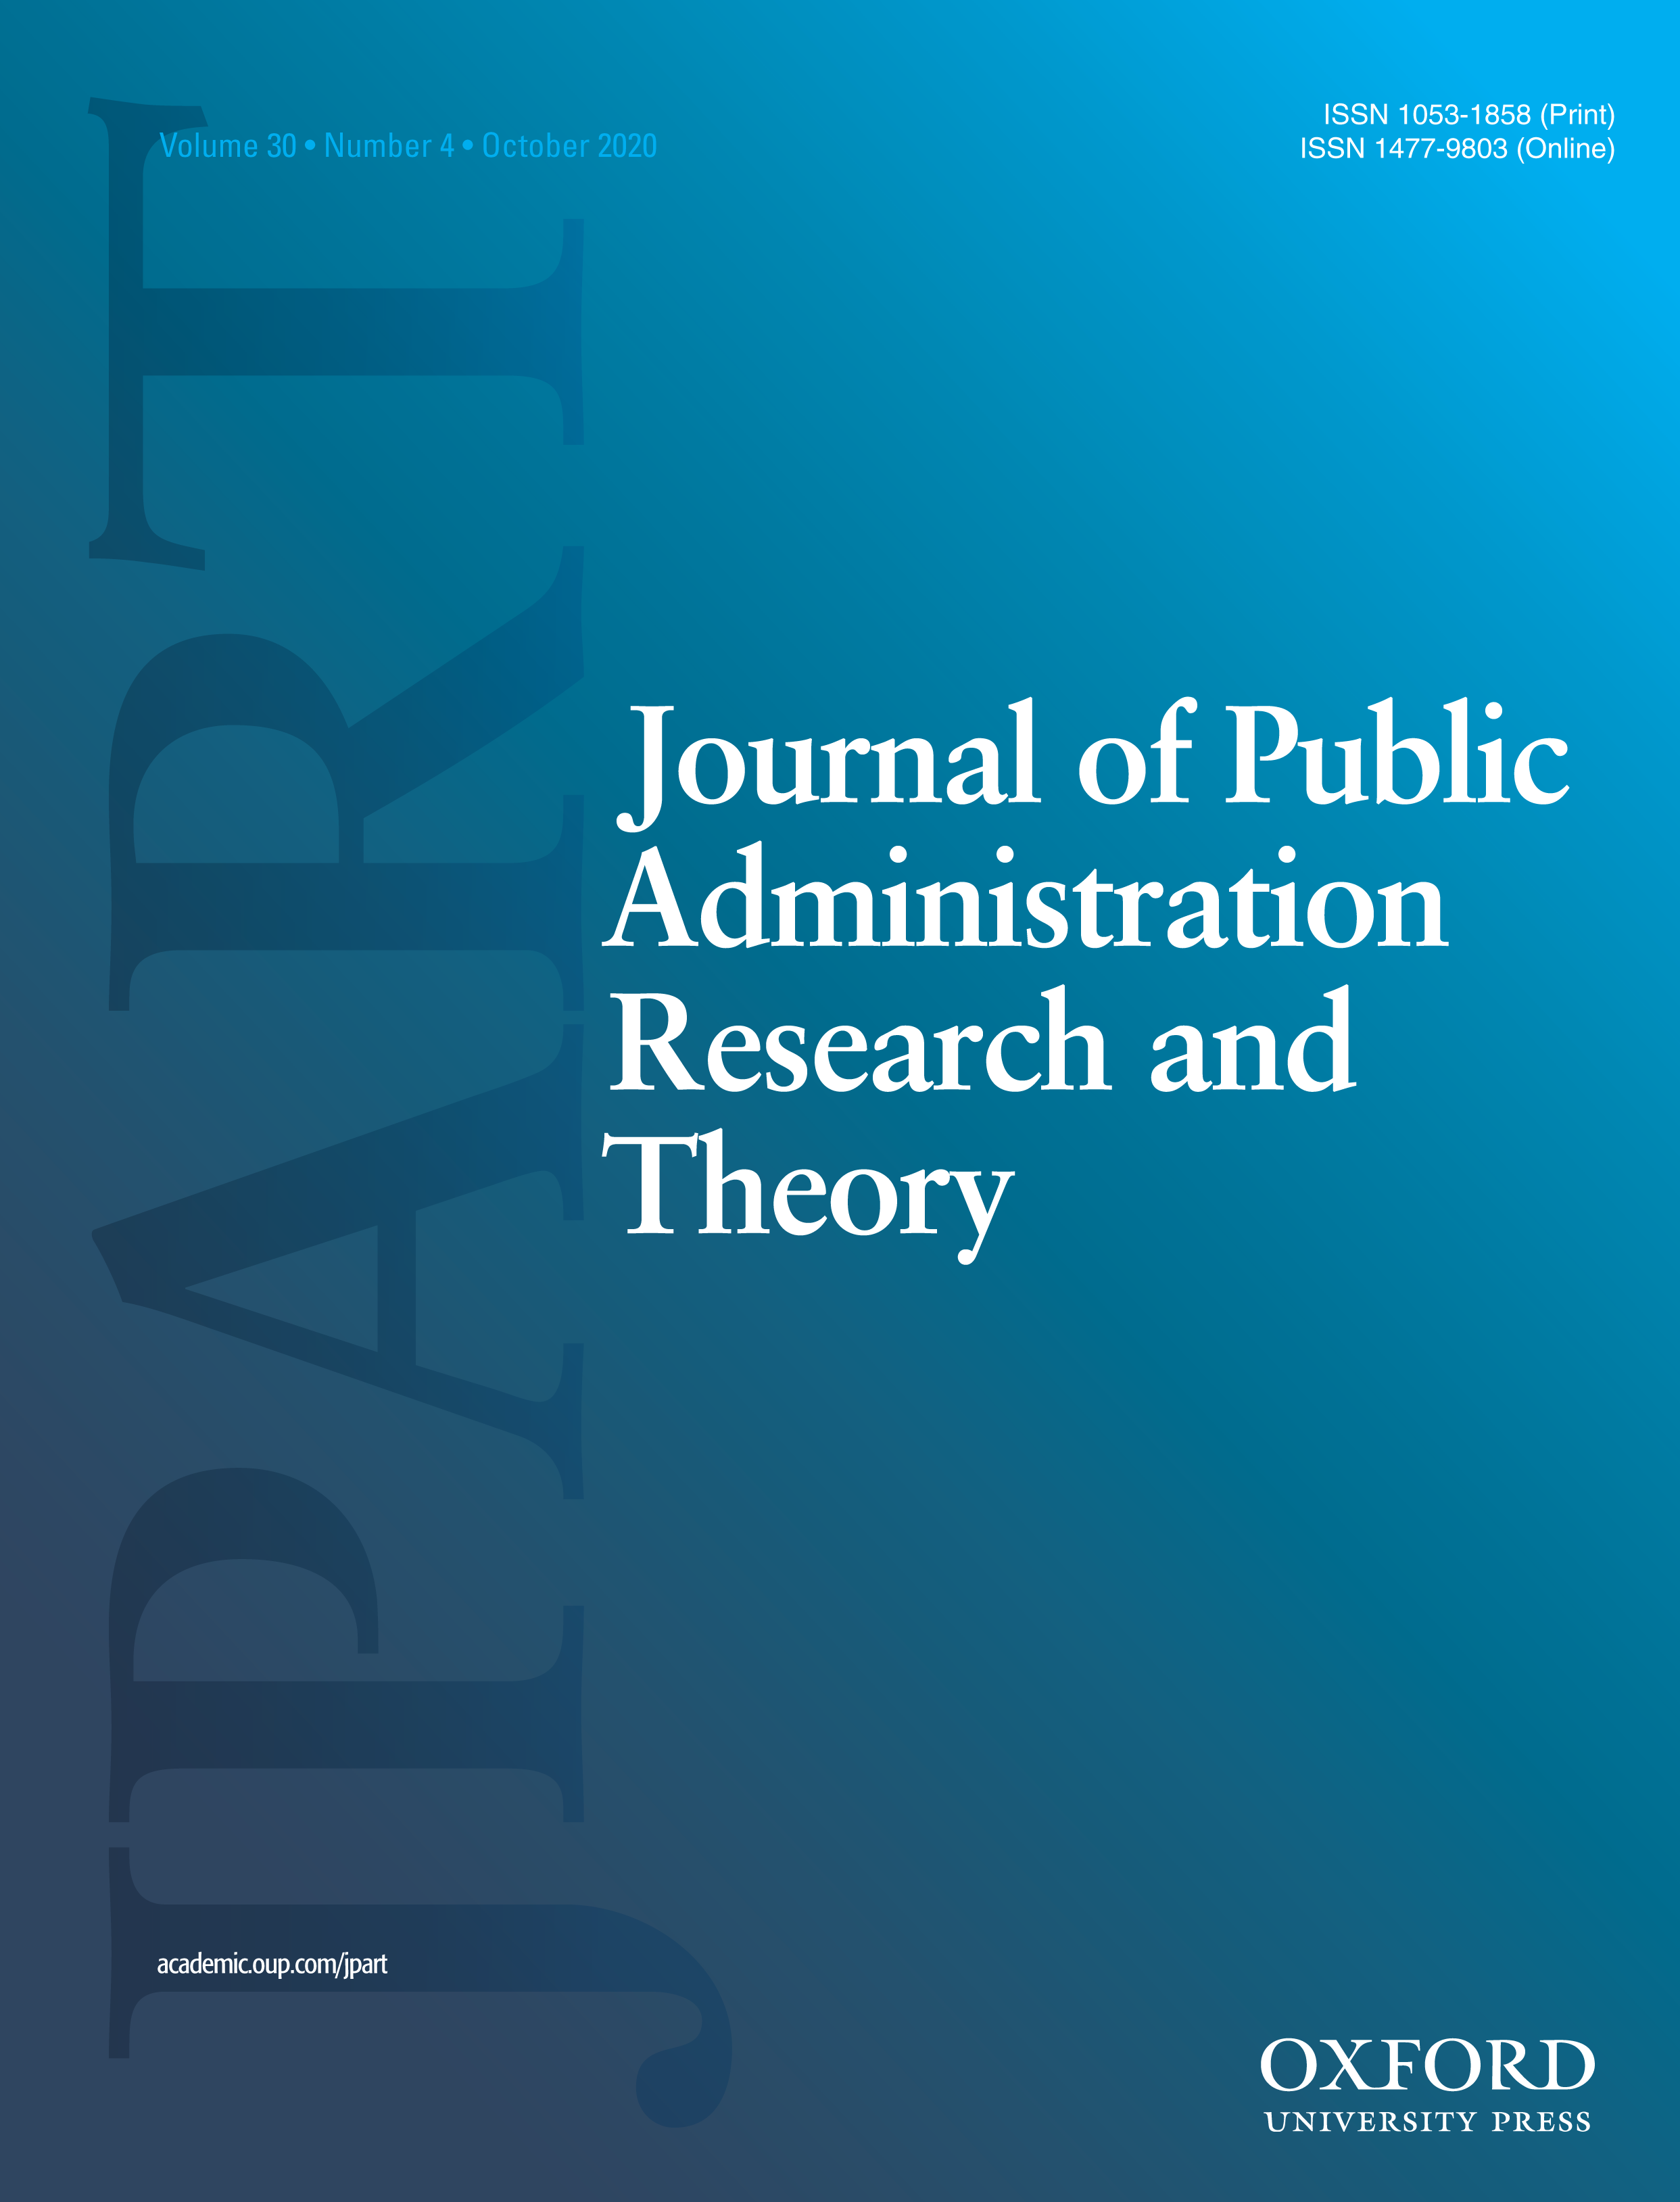 Sector-specific associations, trust, and survival of PPPs